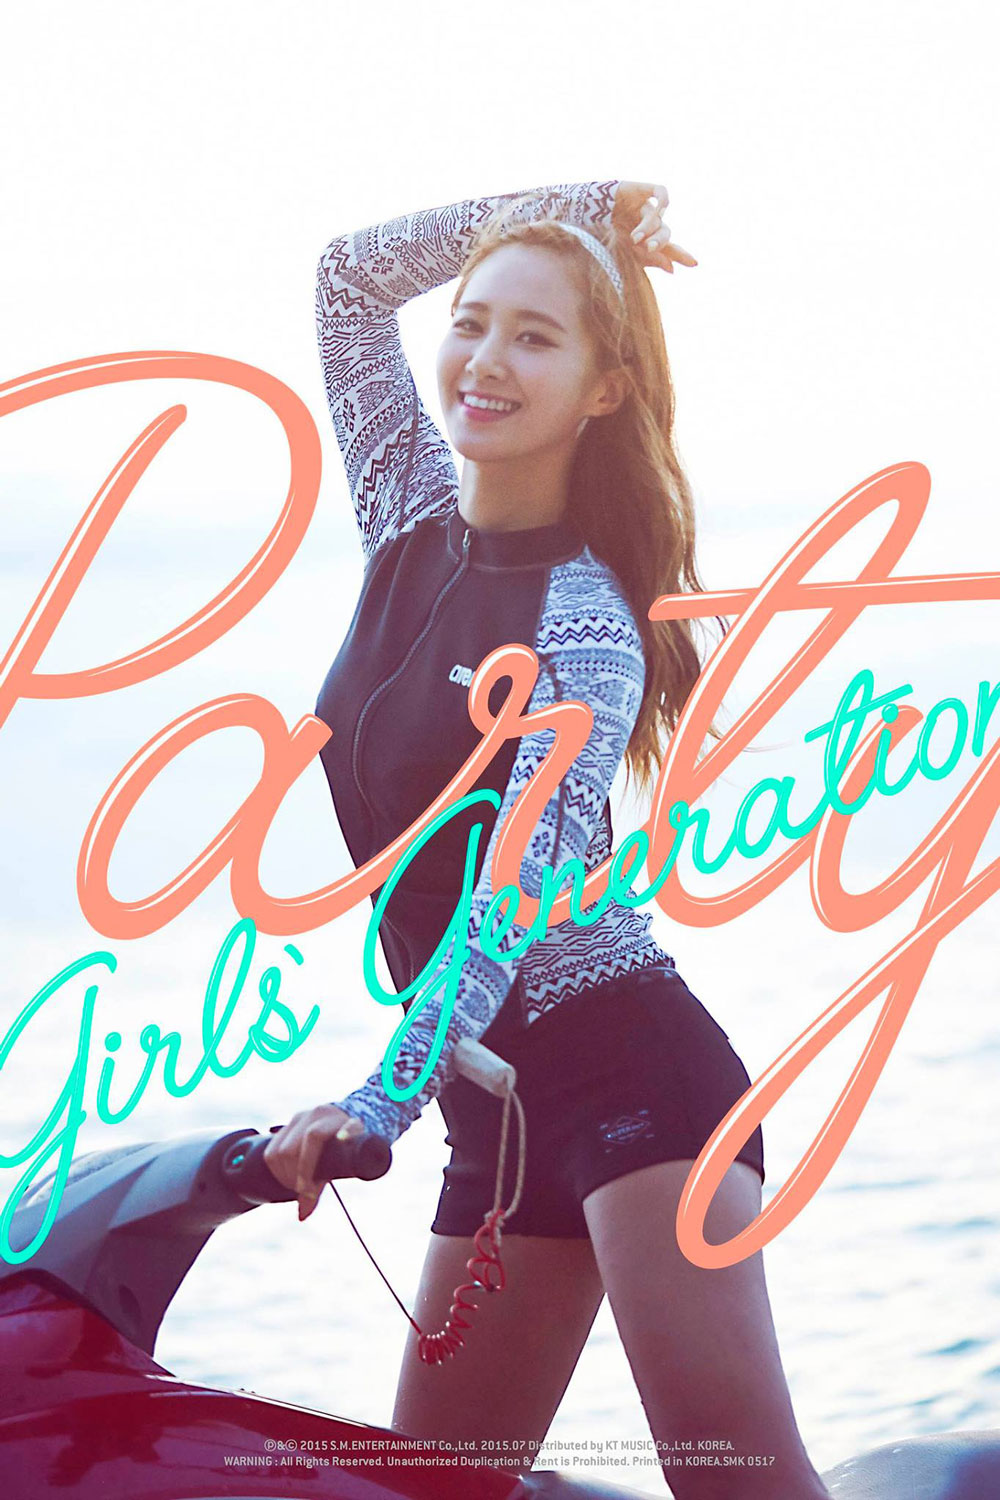 Girls' Generation Party teaser photos